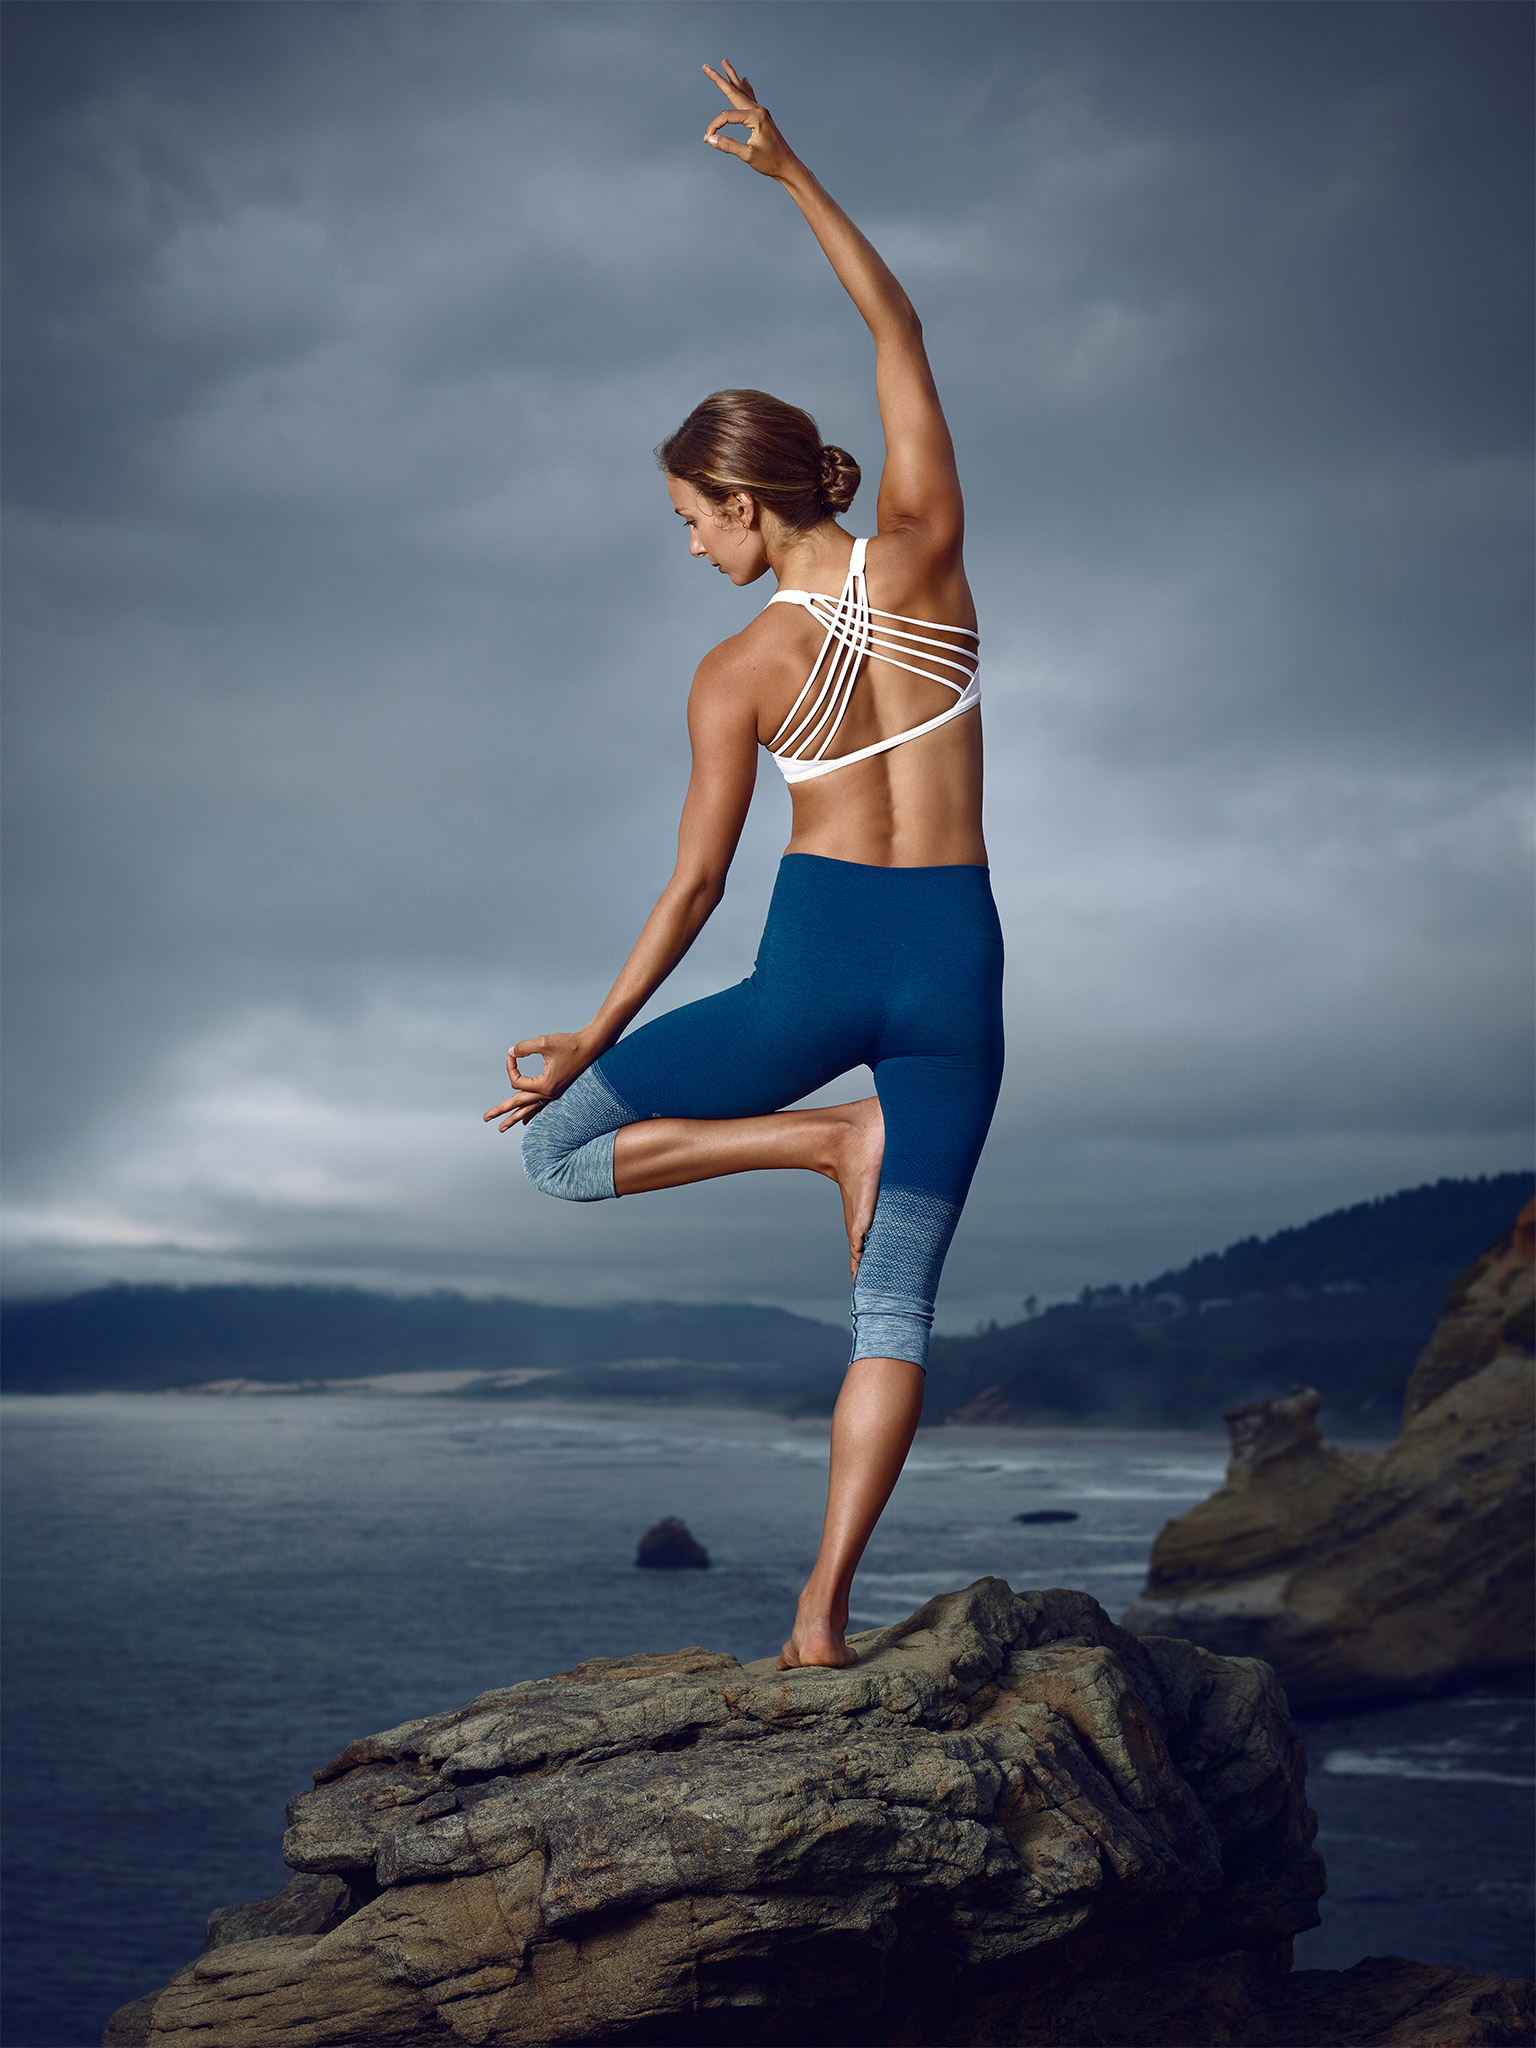 Model Practices Yoga on Rock | Zach Ancell Photography